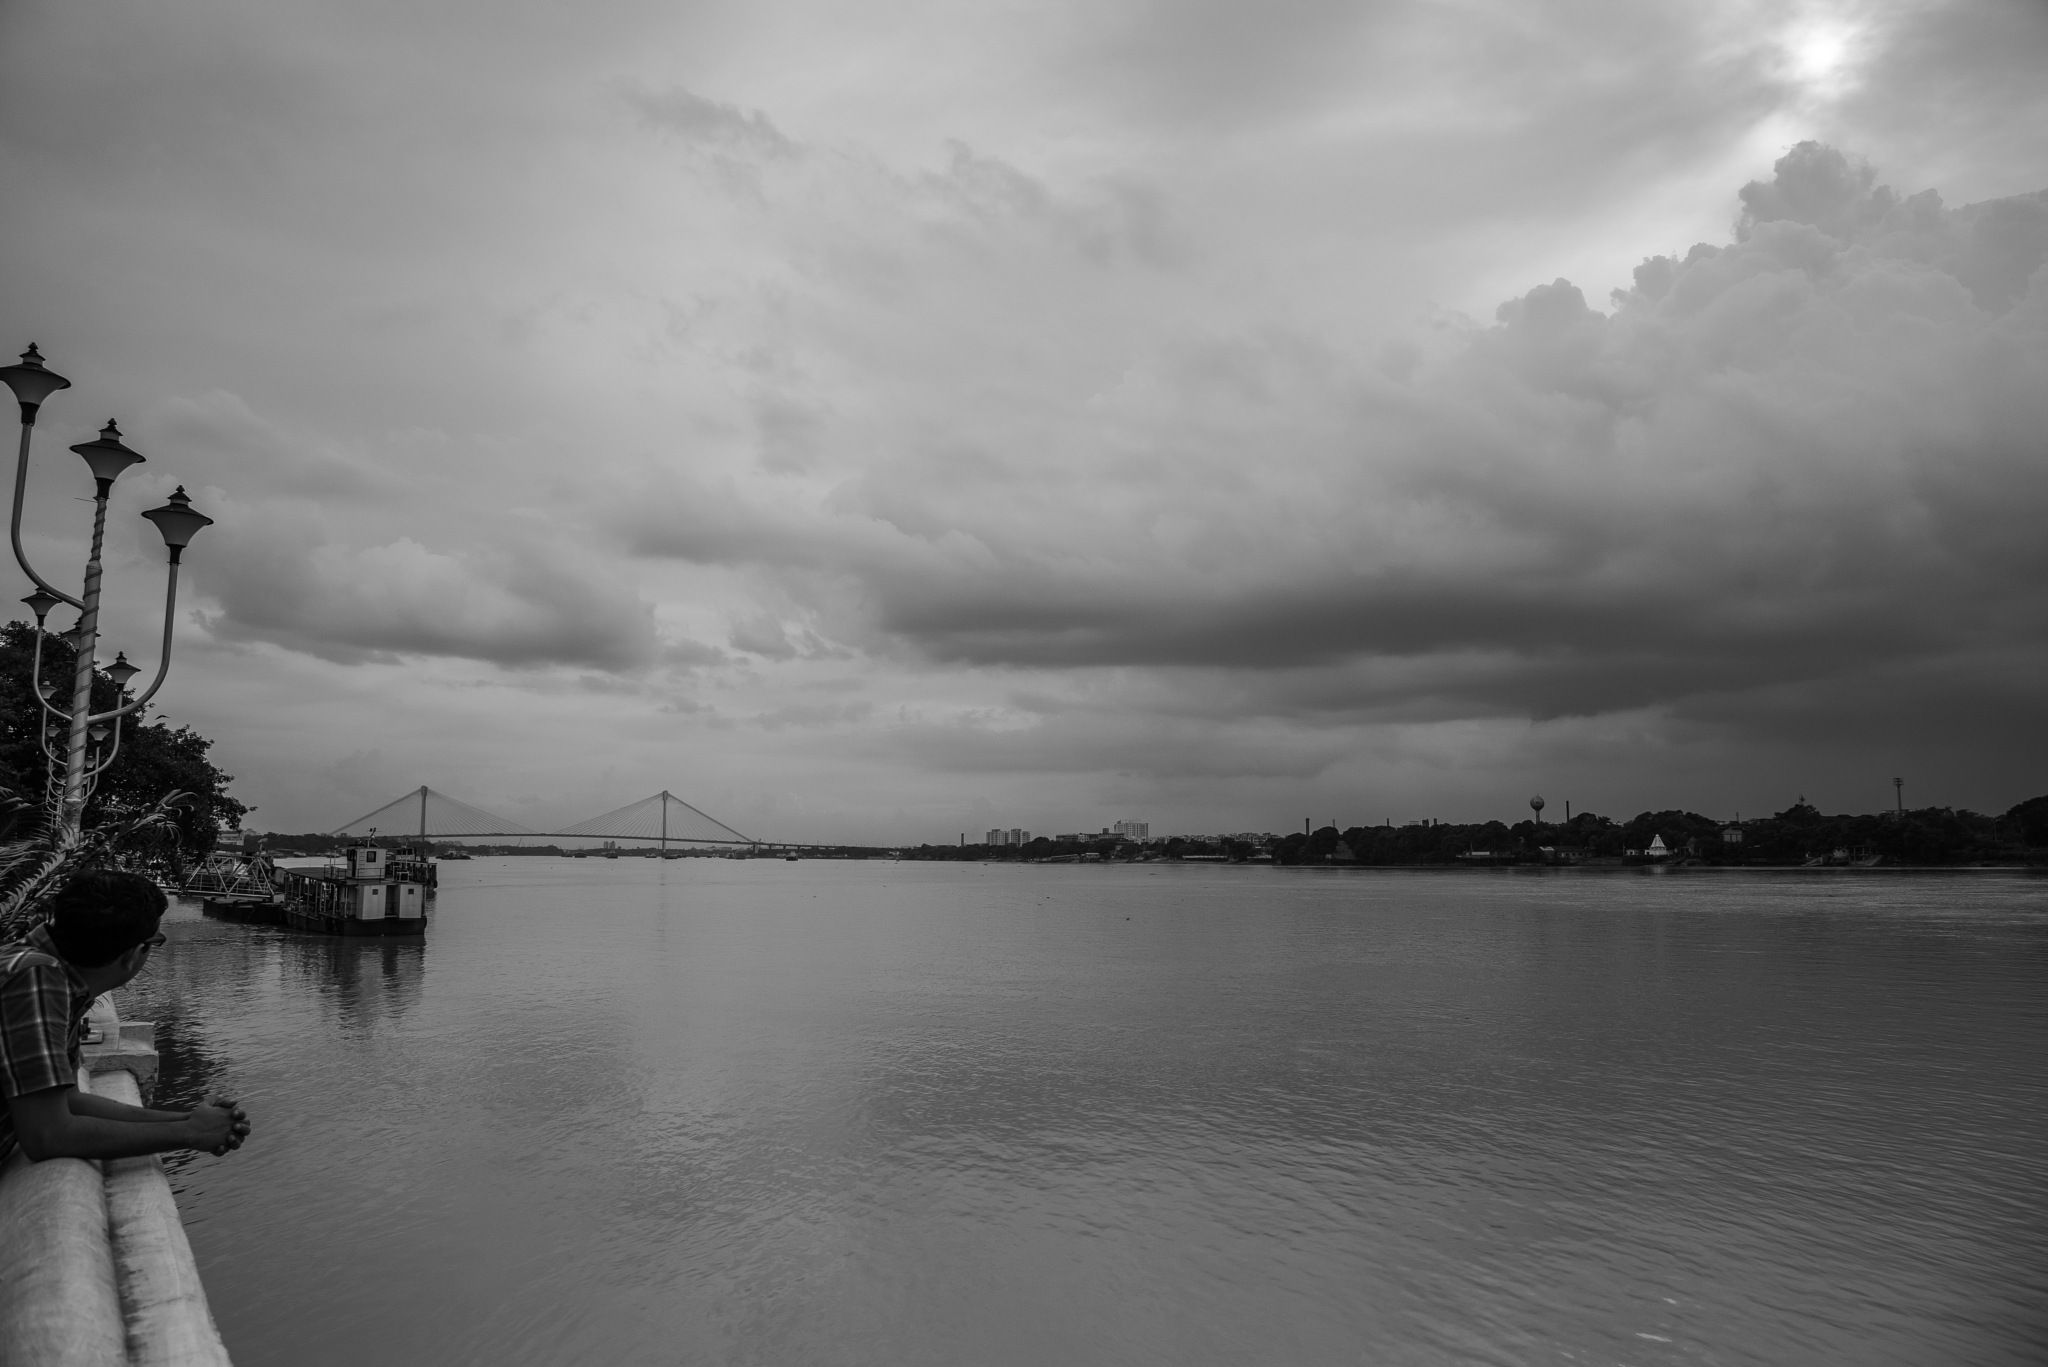 JUST ANOTHER AFTERNOON IN KOLKATA by sowmya Mukherjee